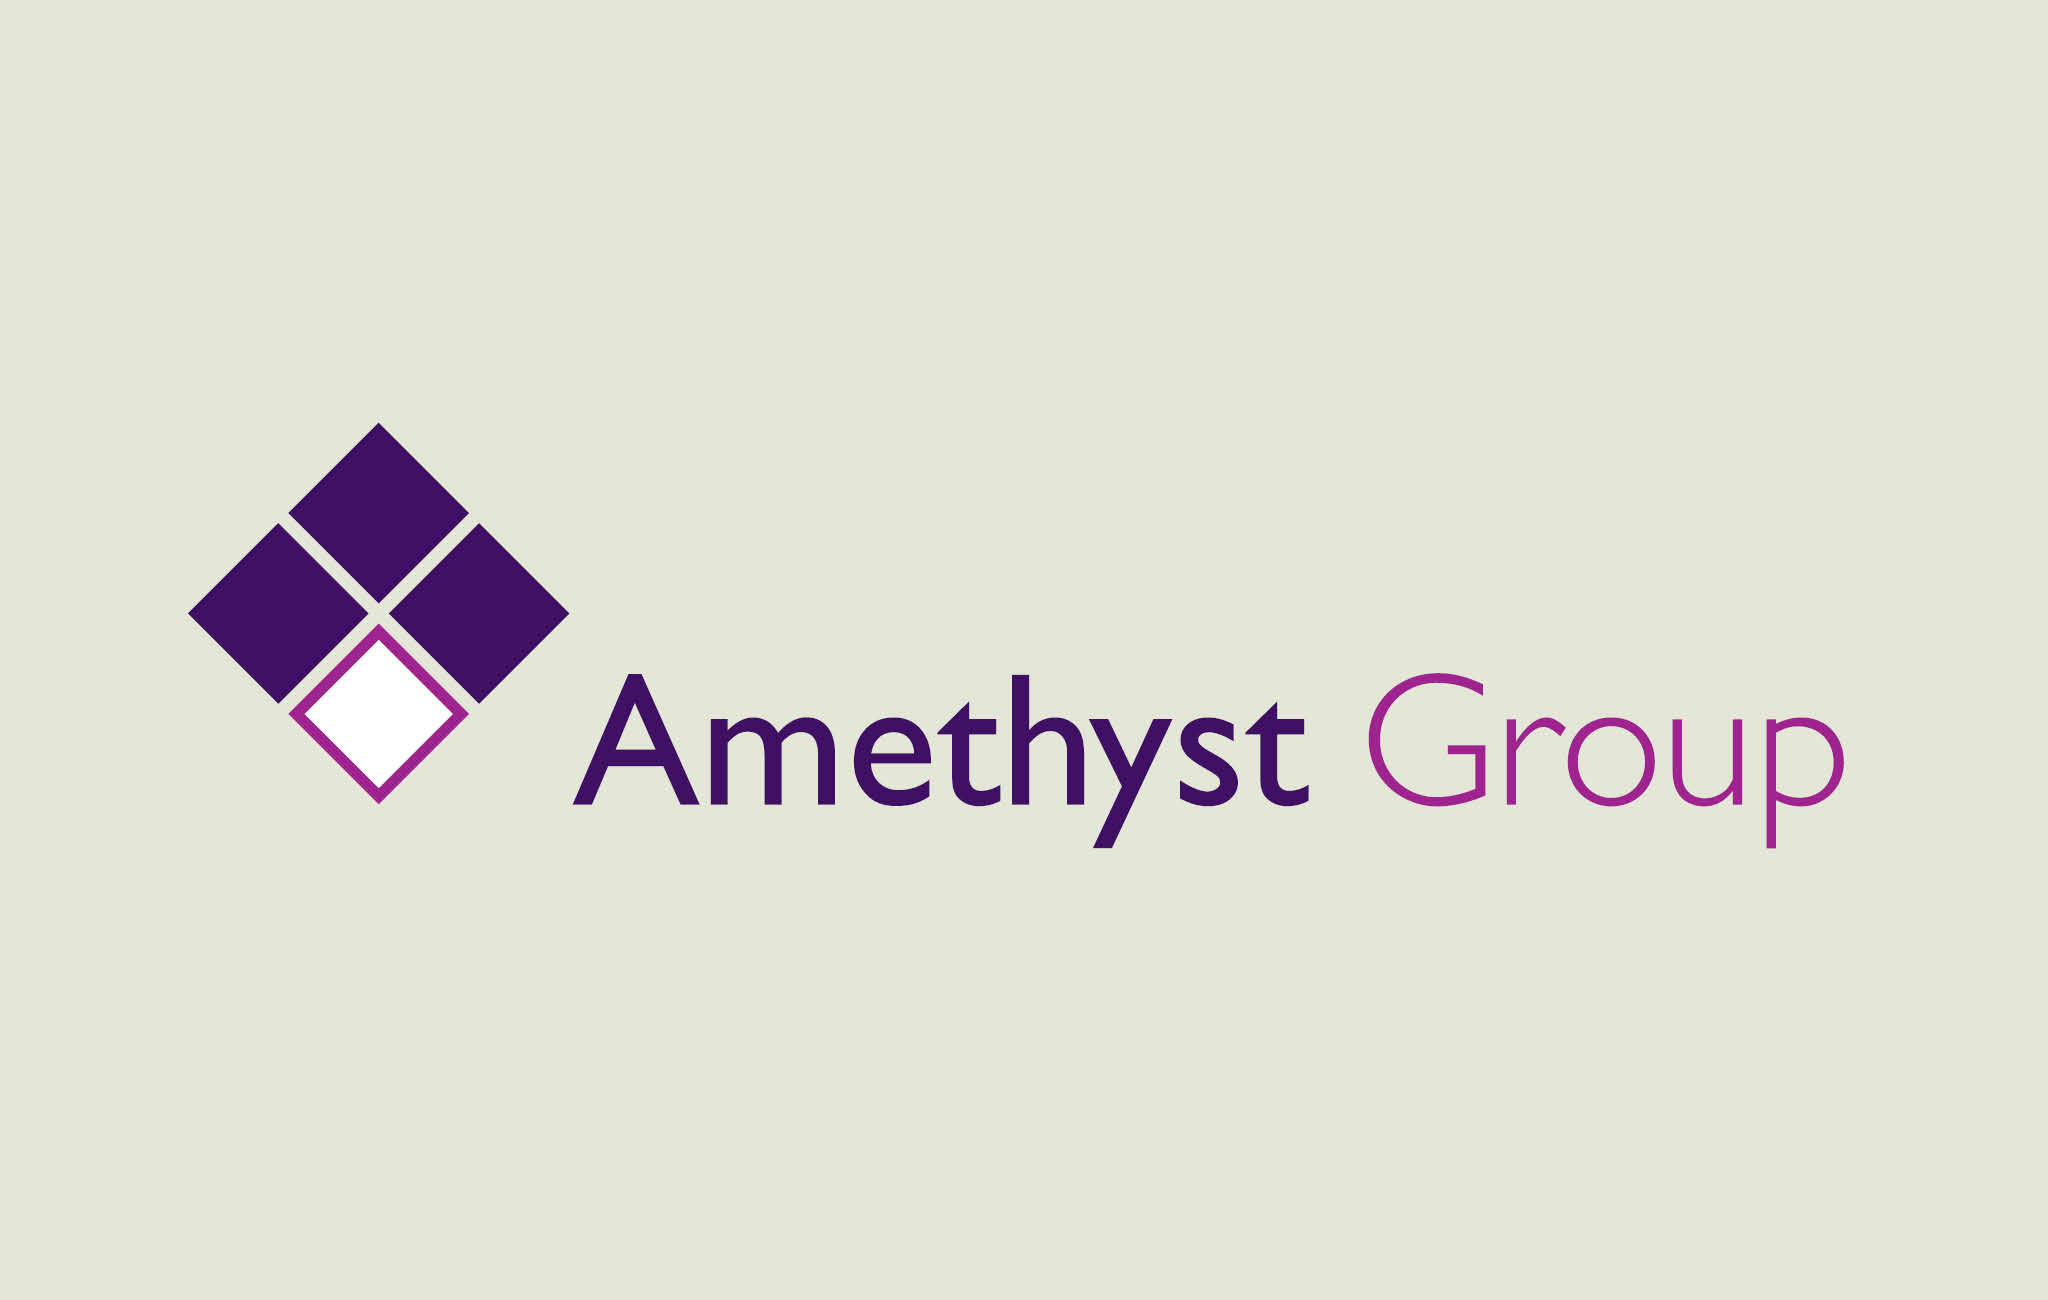 Amethyst Group logo design